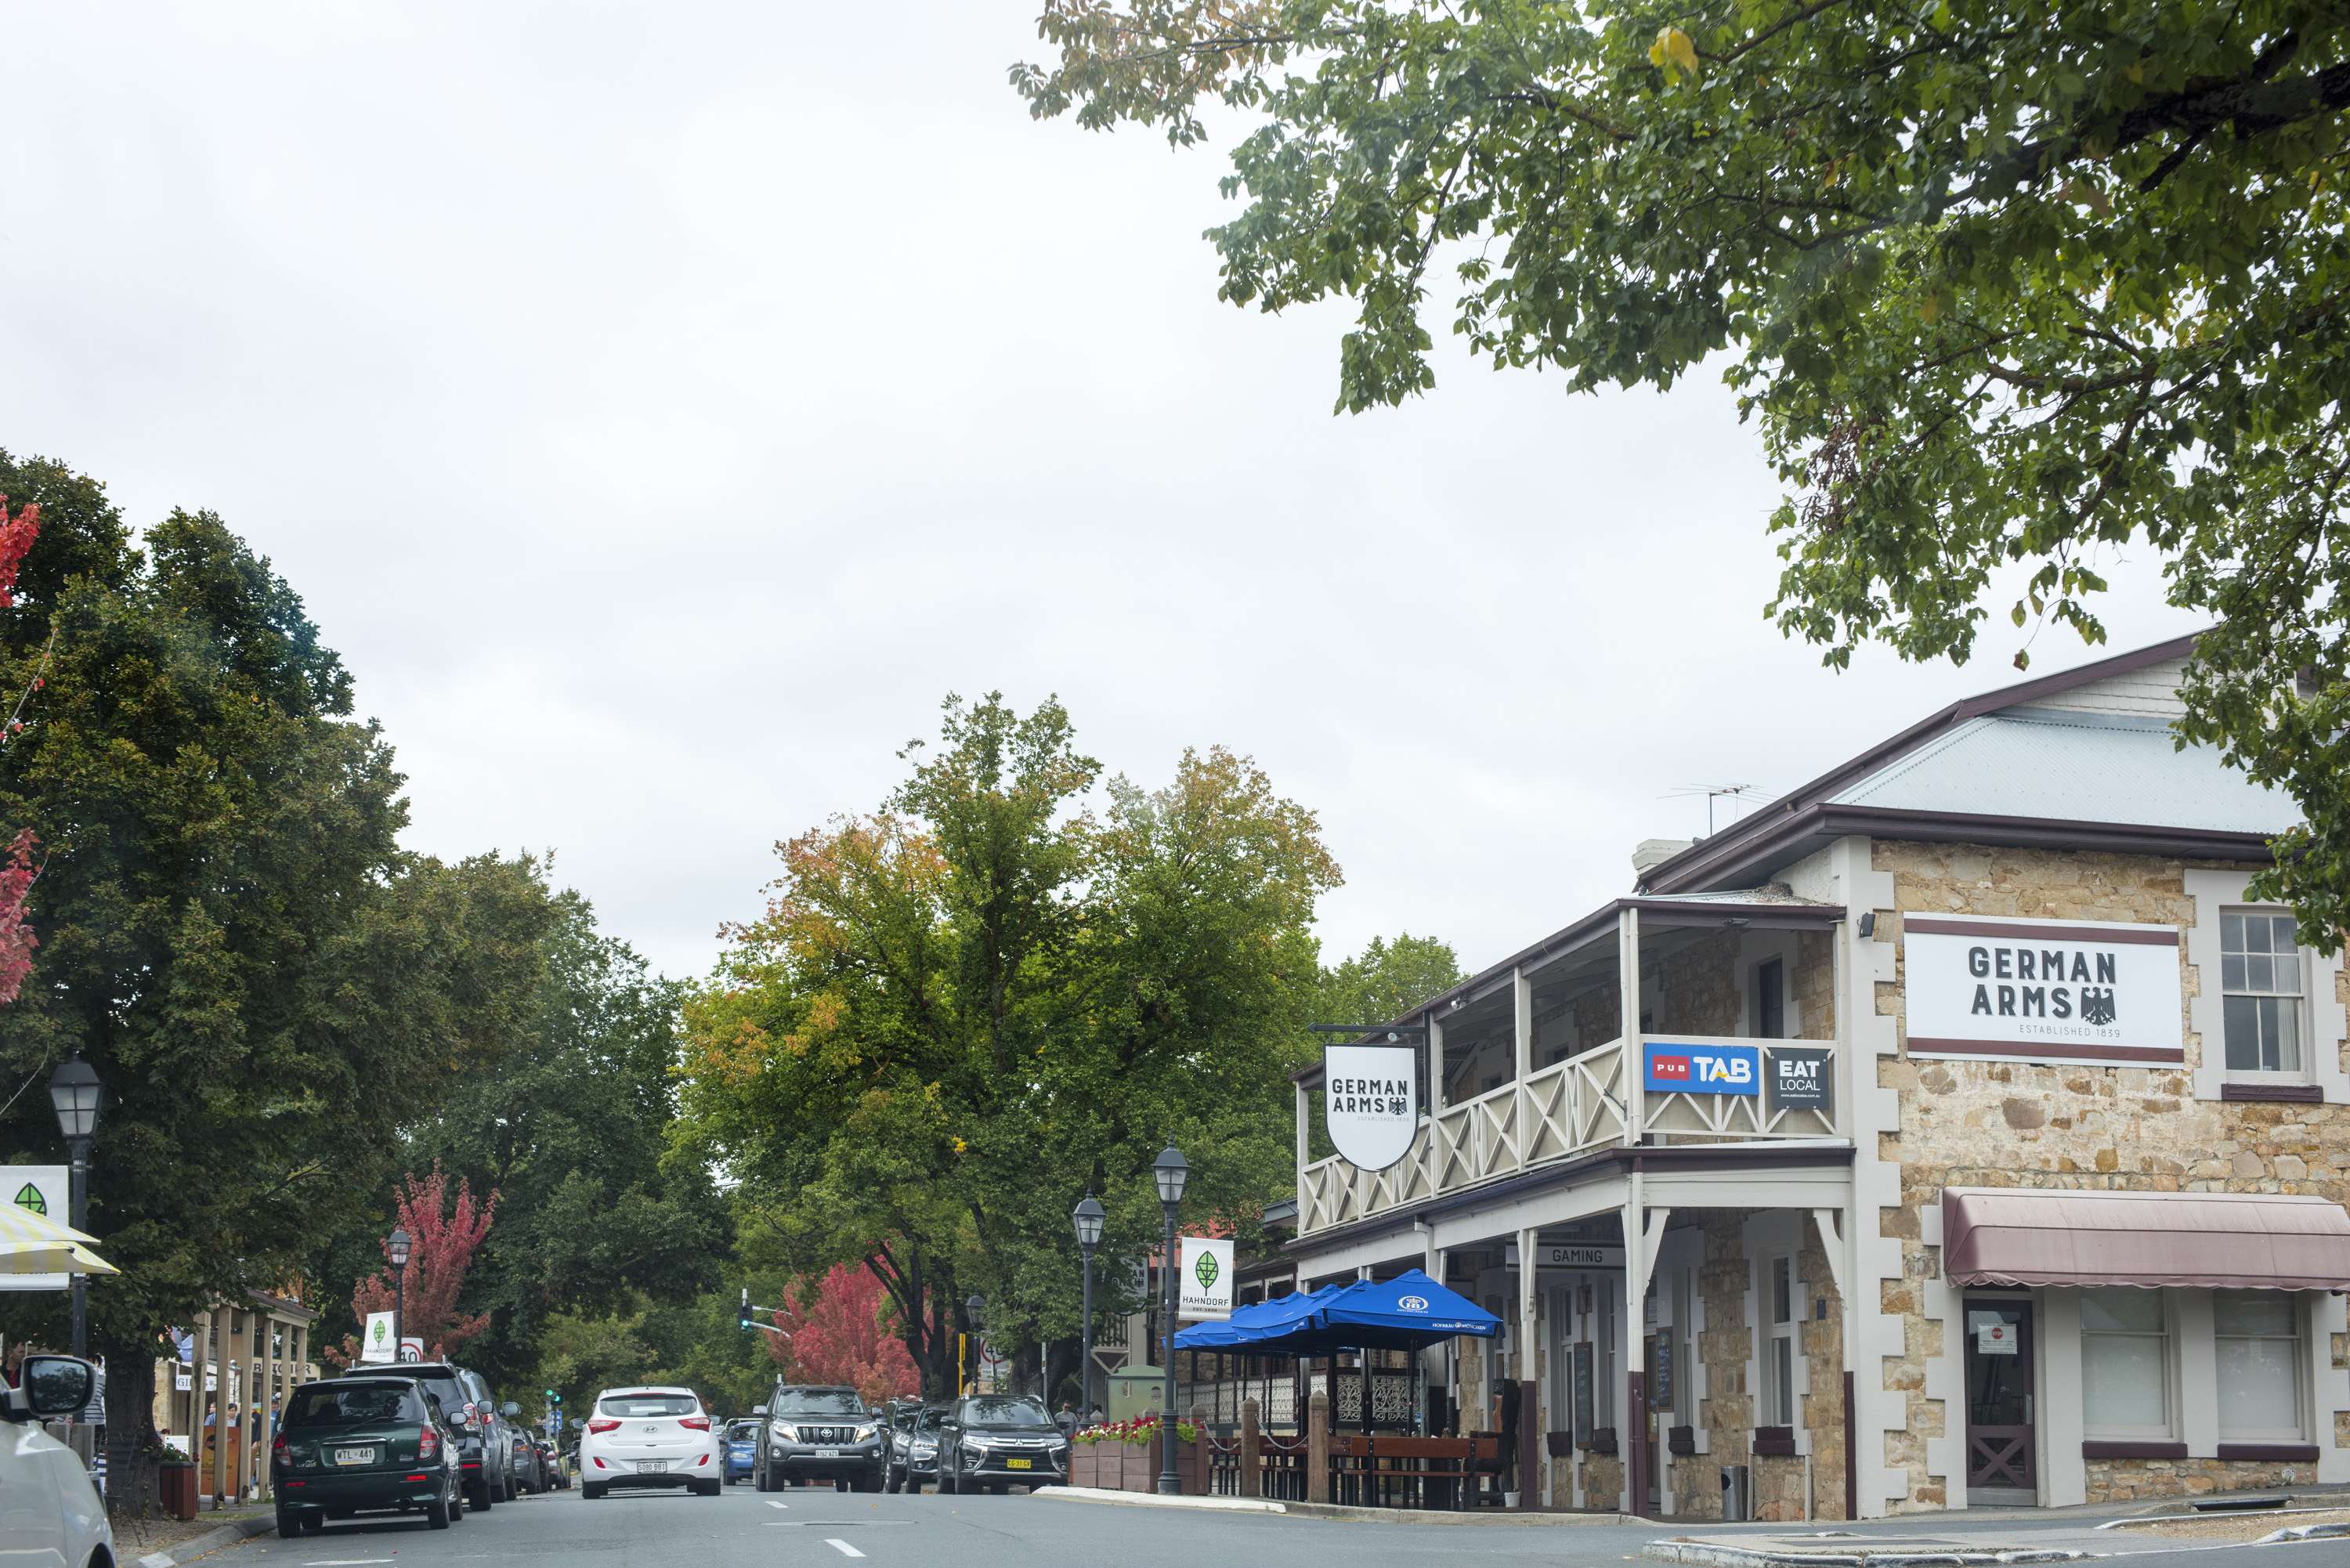 The German Arms Hotel in a leafy green street in Hahndorf, South Australia, s small town populated by Lutheran migrants